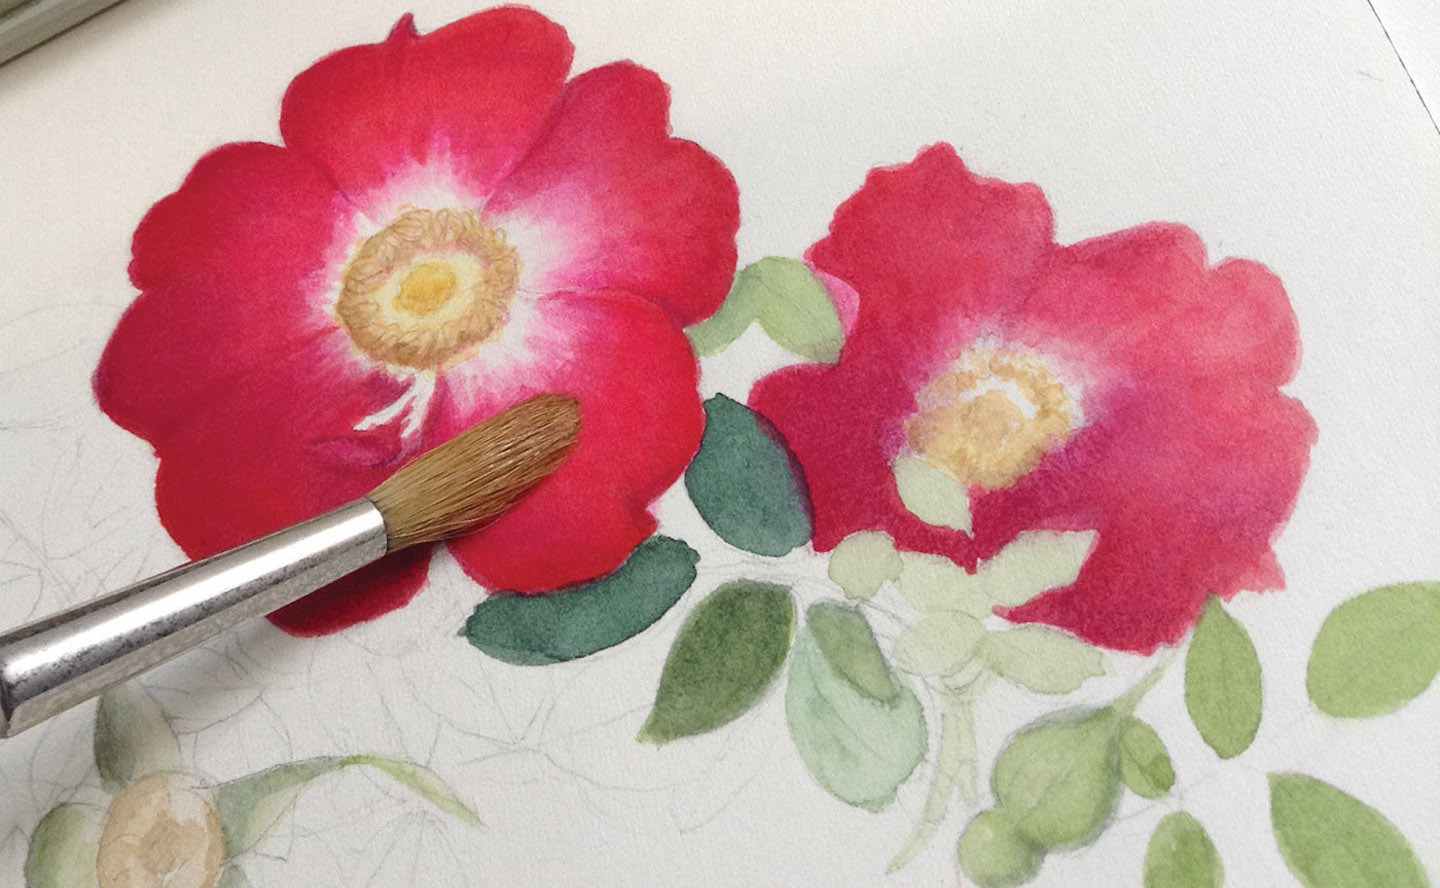 Beginner Watercolor Tips Your Guide To Painting Flowers And Beyond